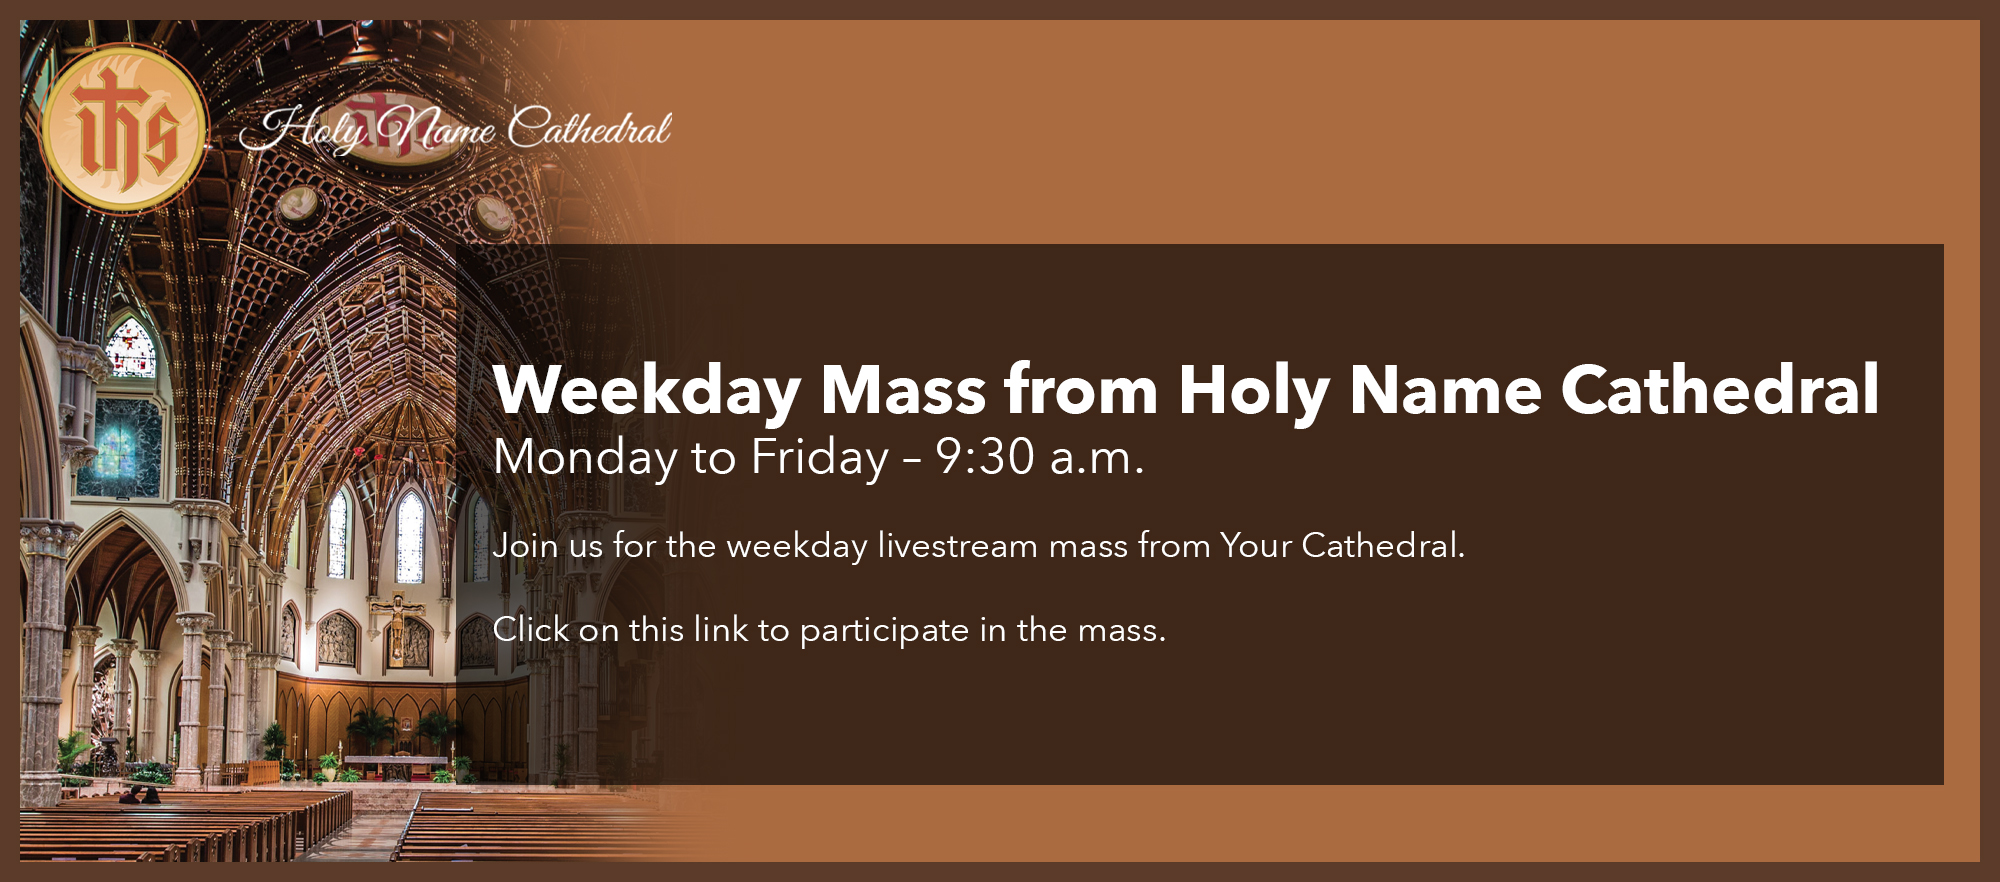 Weekday Mass from Holy Name